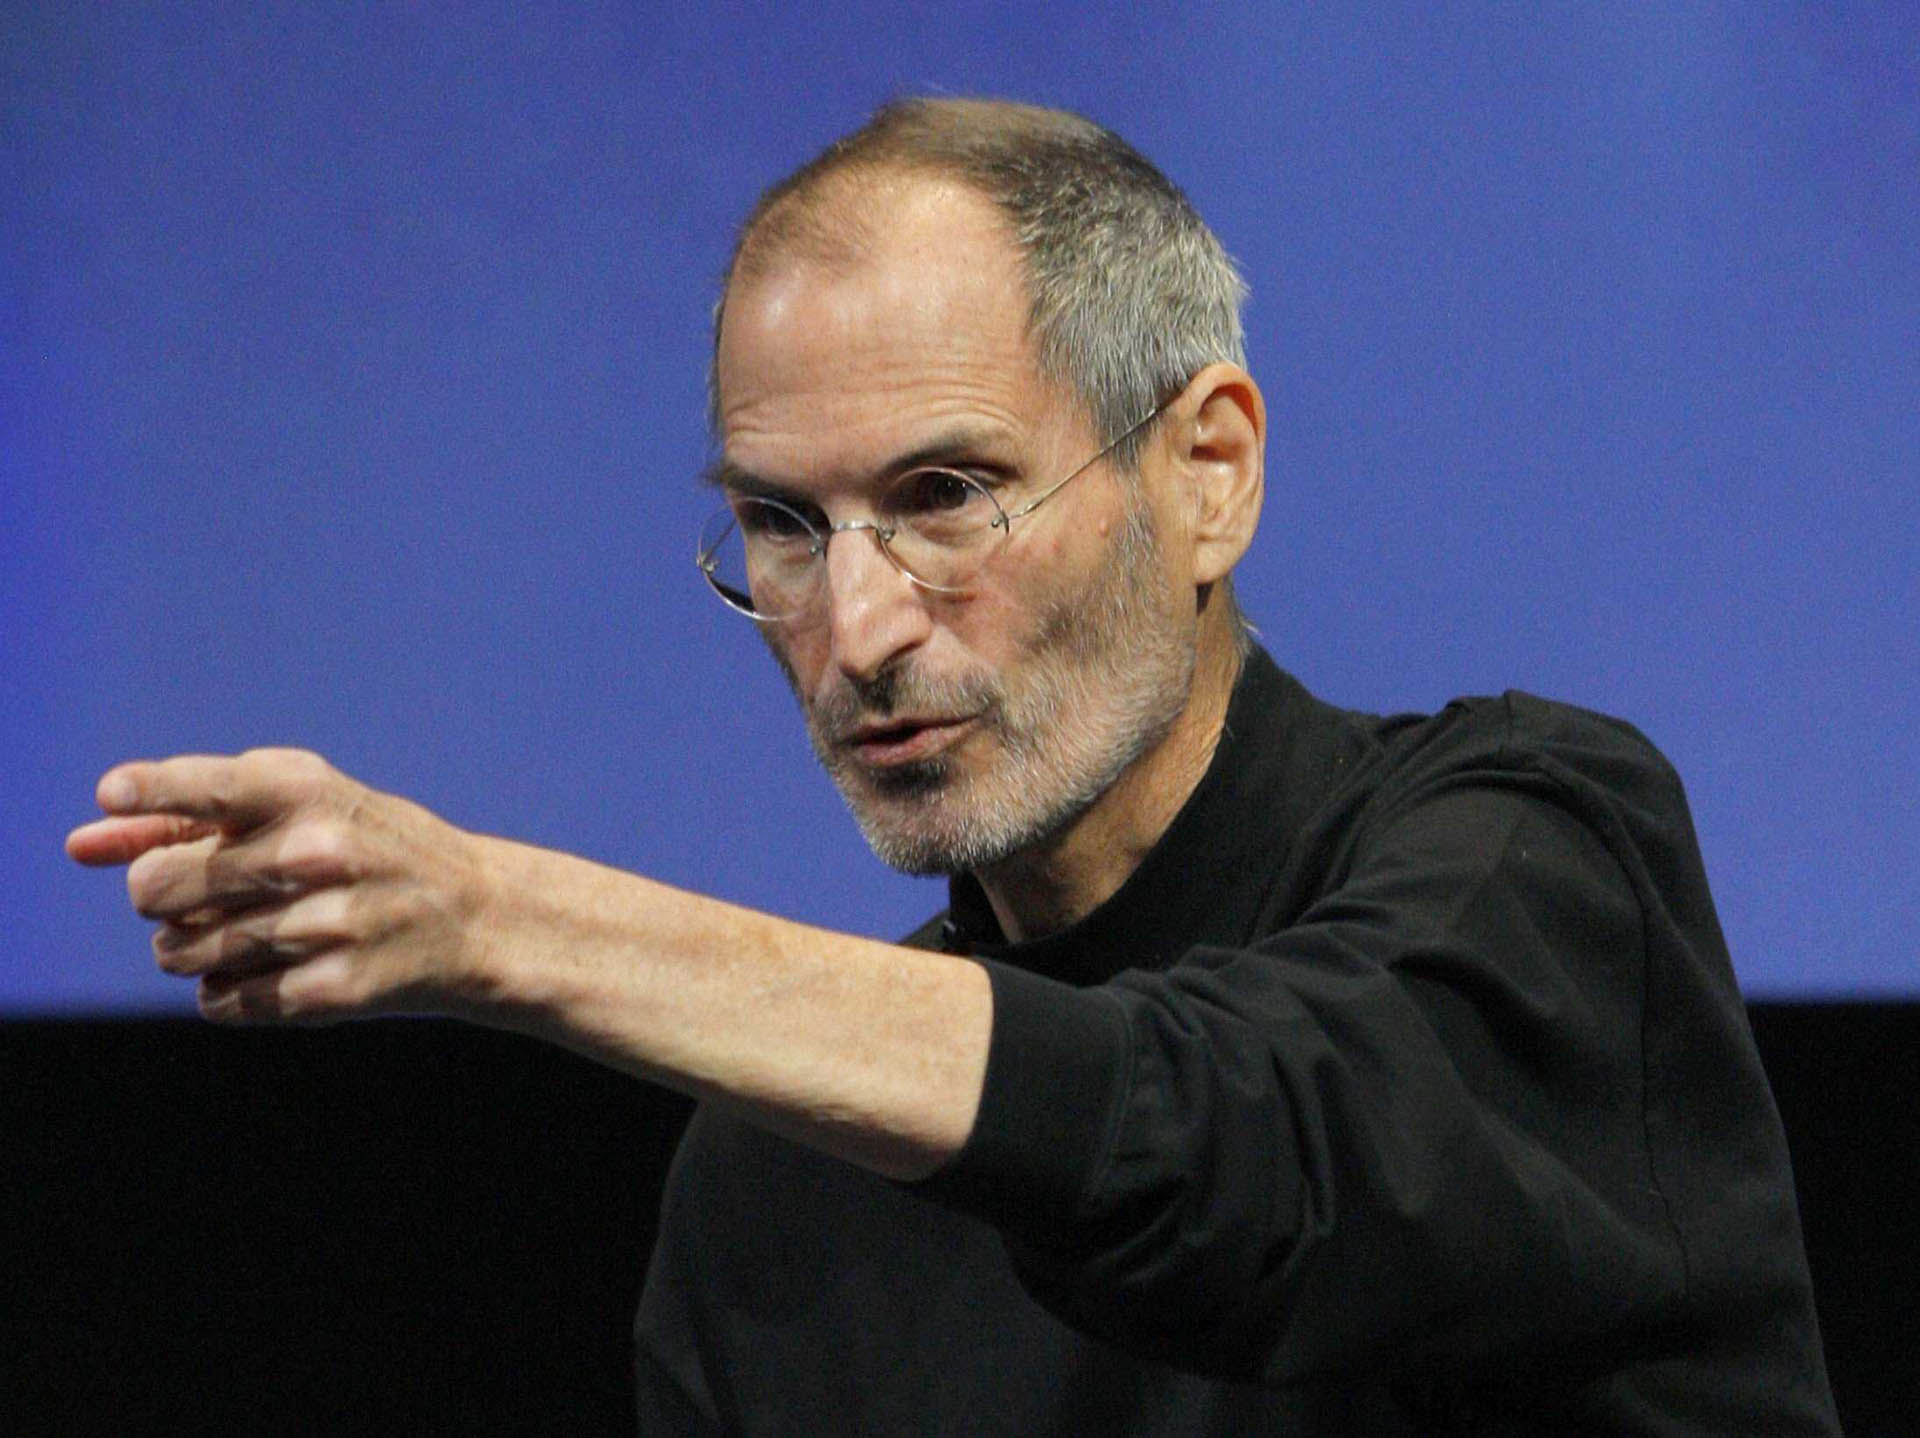 Steve Jobs indicating at some one while talking